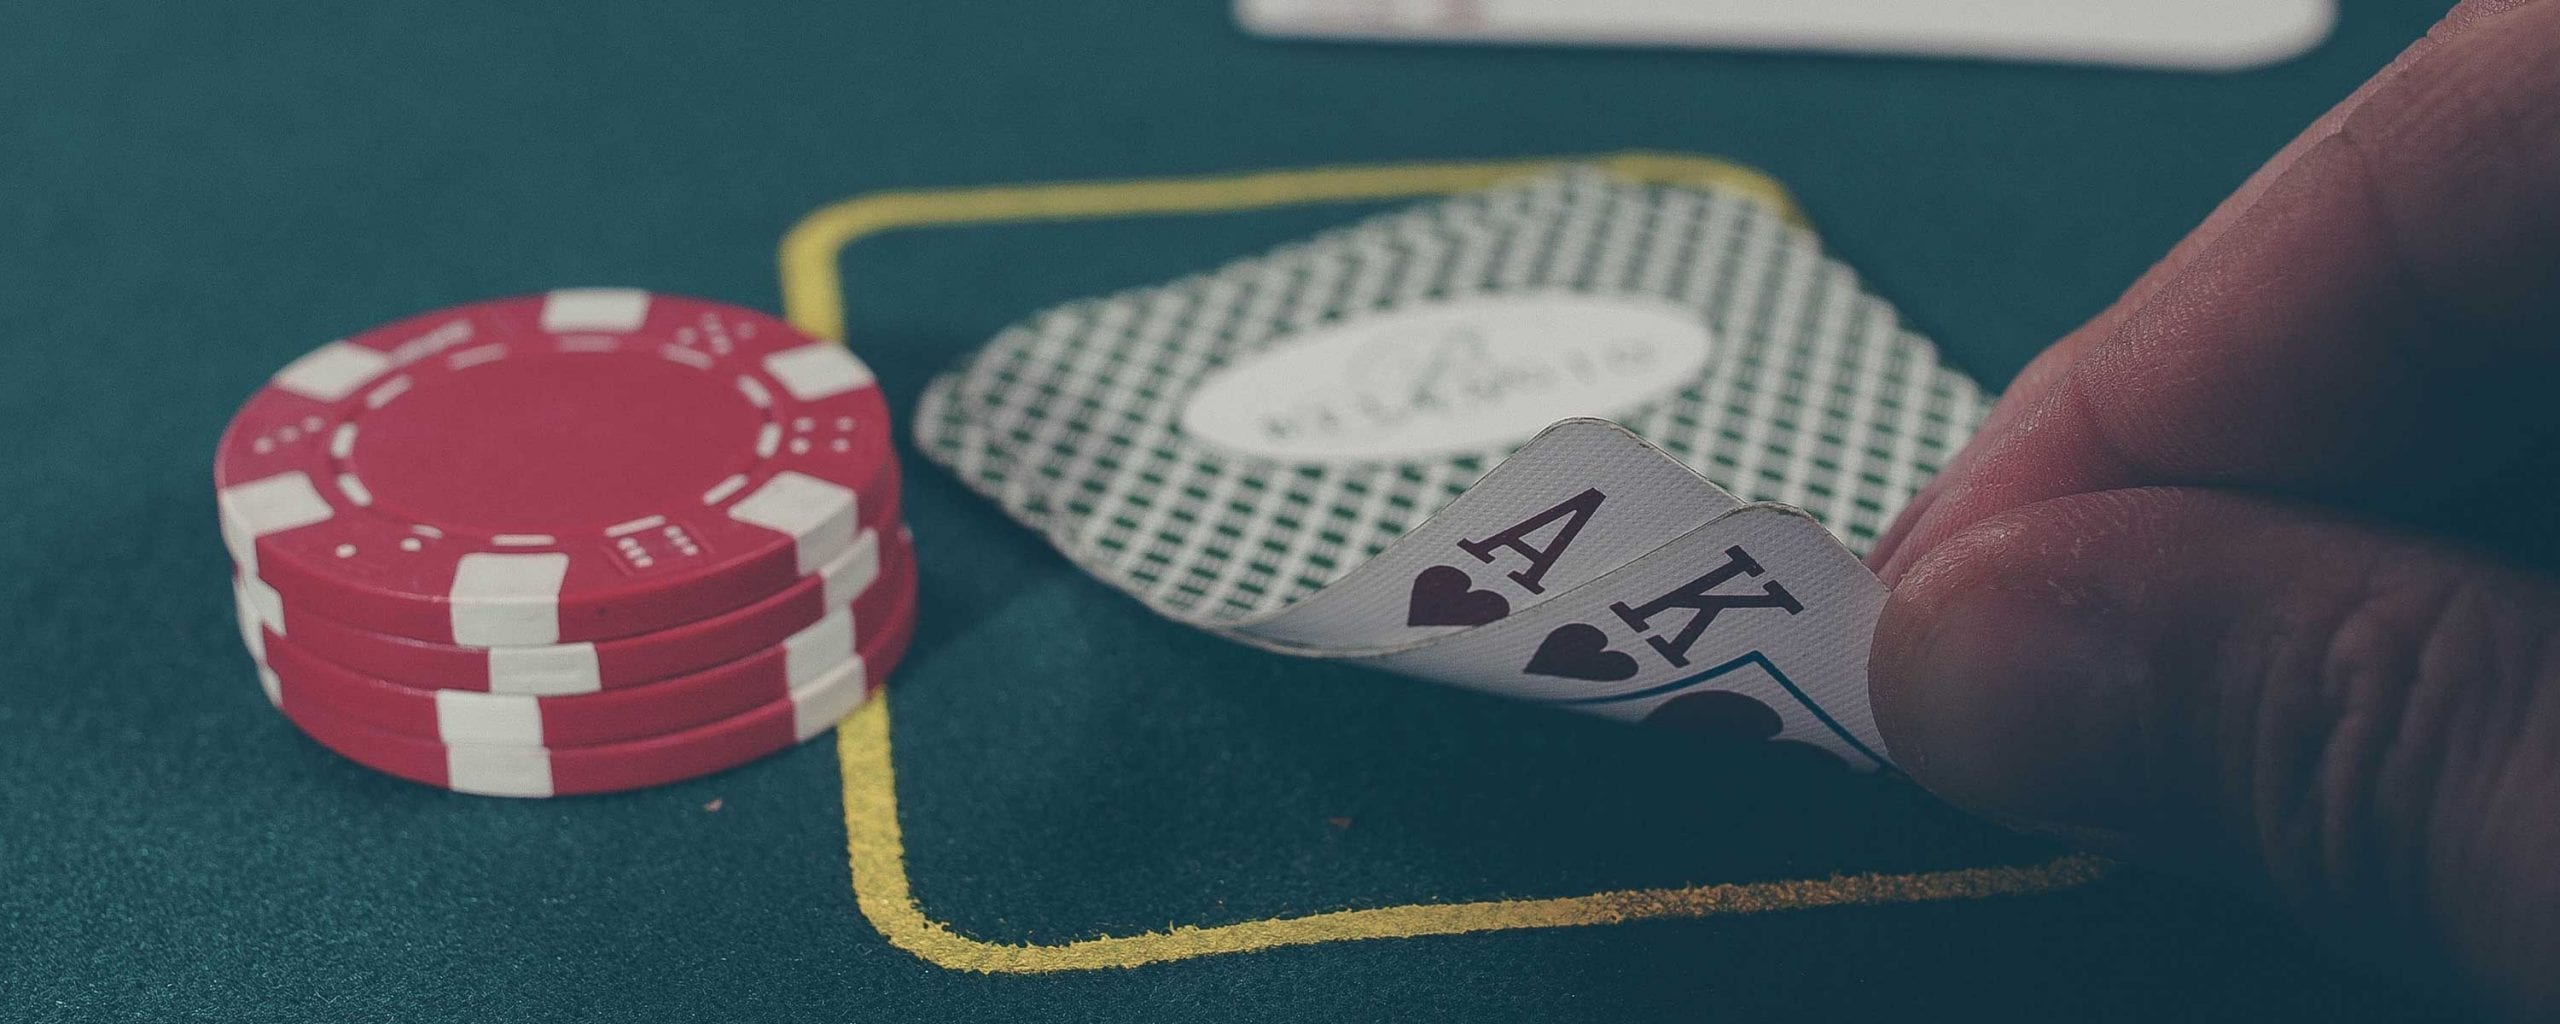 Casino party game at an event